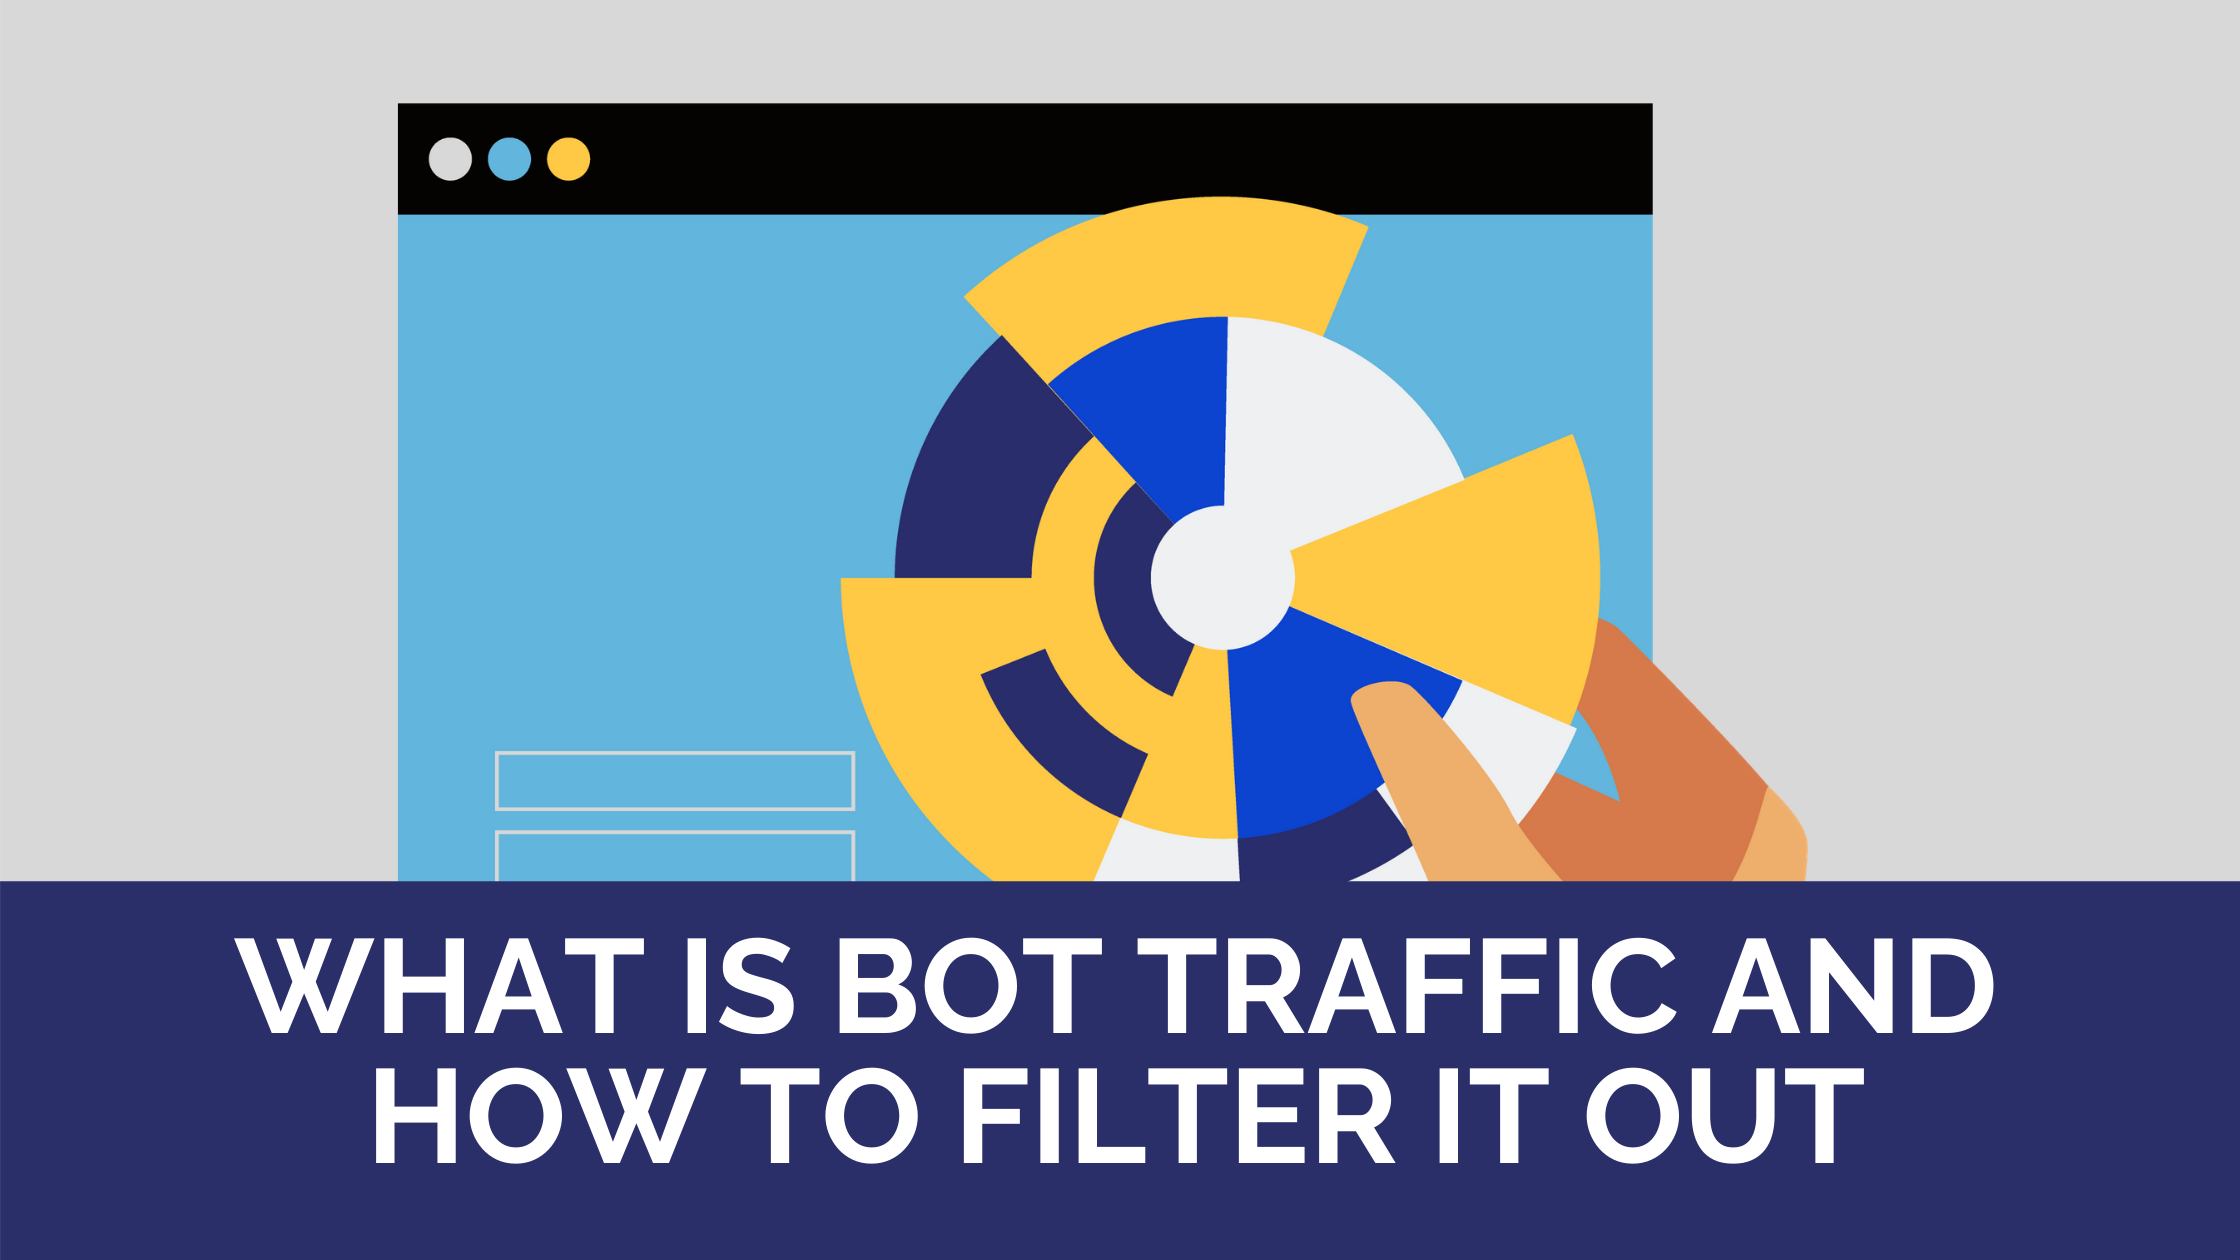 What is bot traffic and how to filter it out